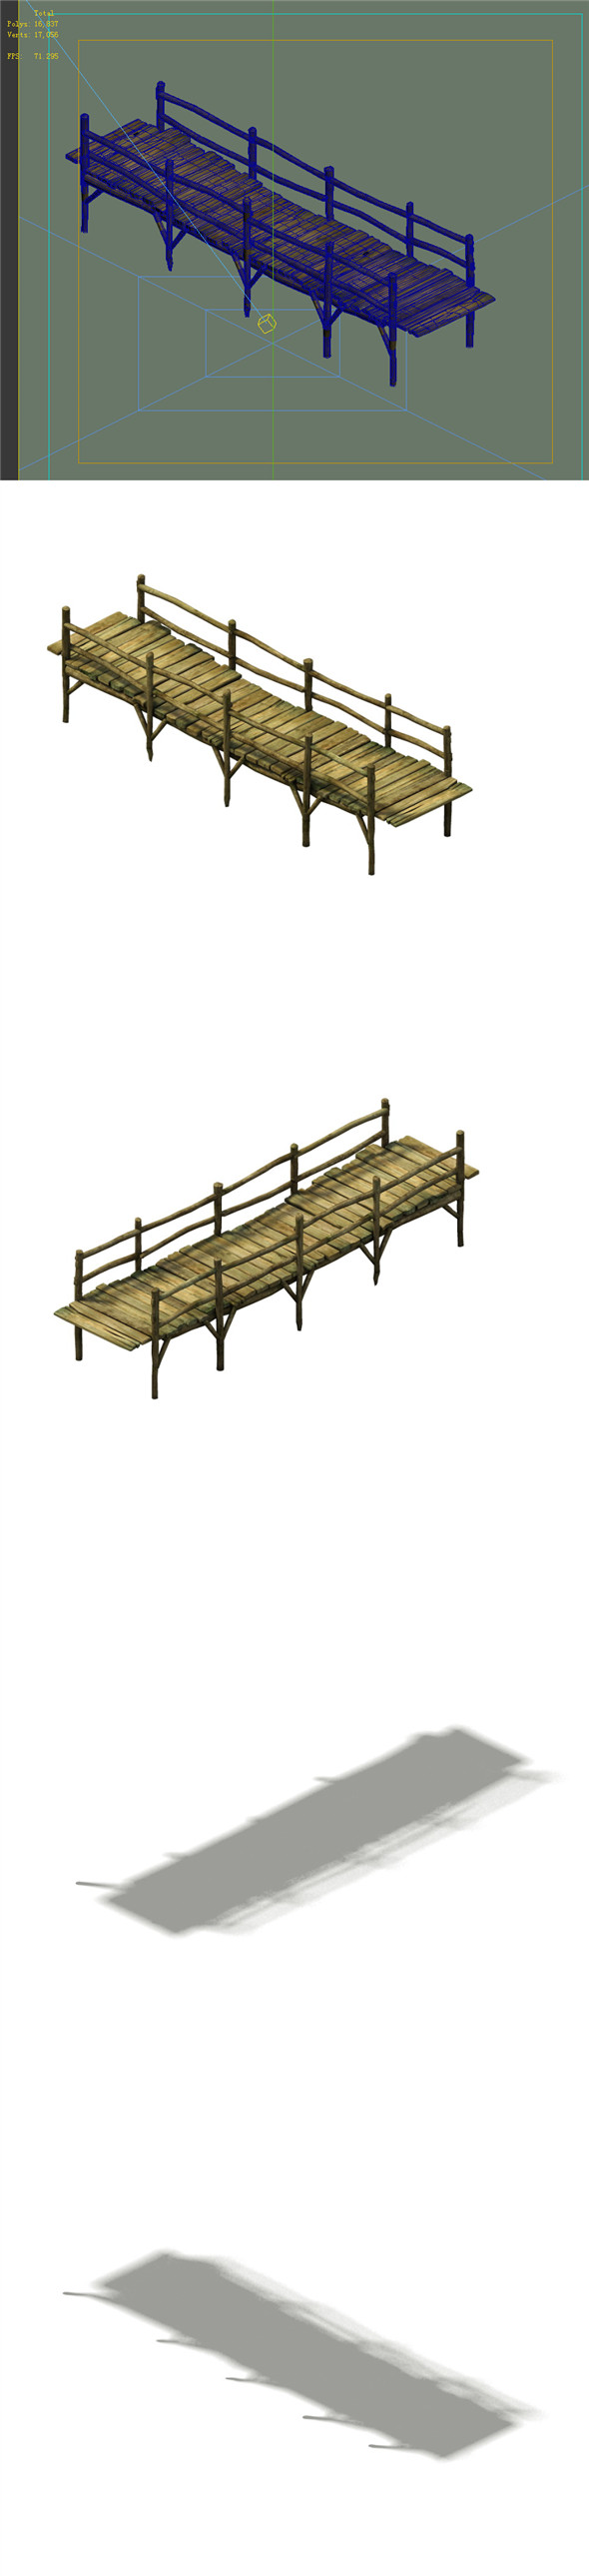 Game Model - prairie scene - wooden bridge 02 01 - 3DOcean Item for Sale